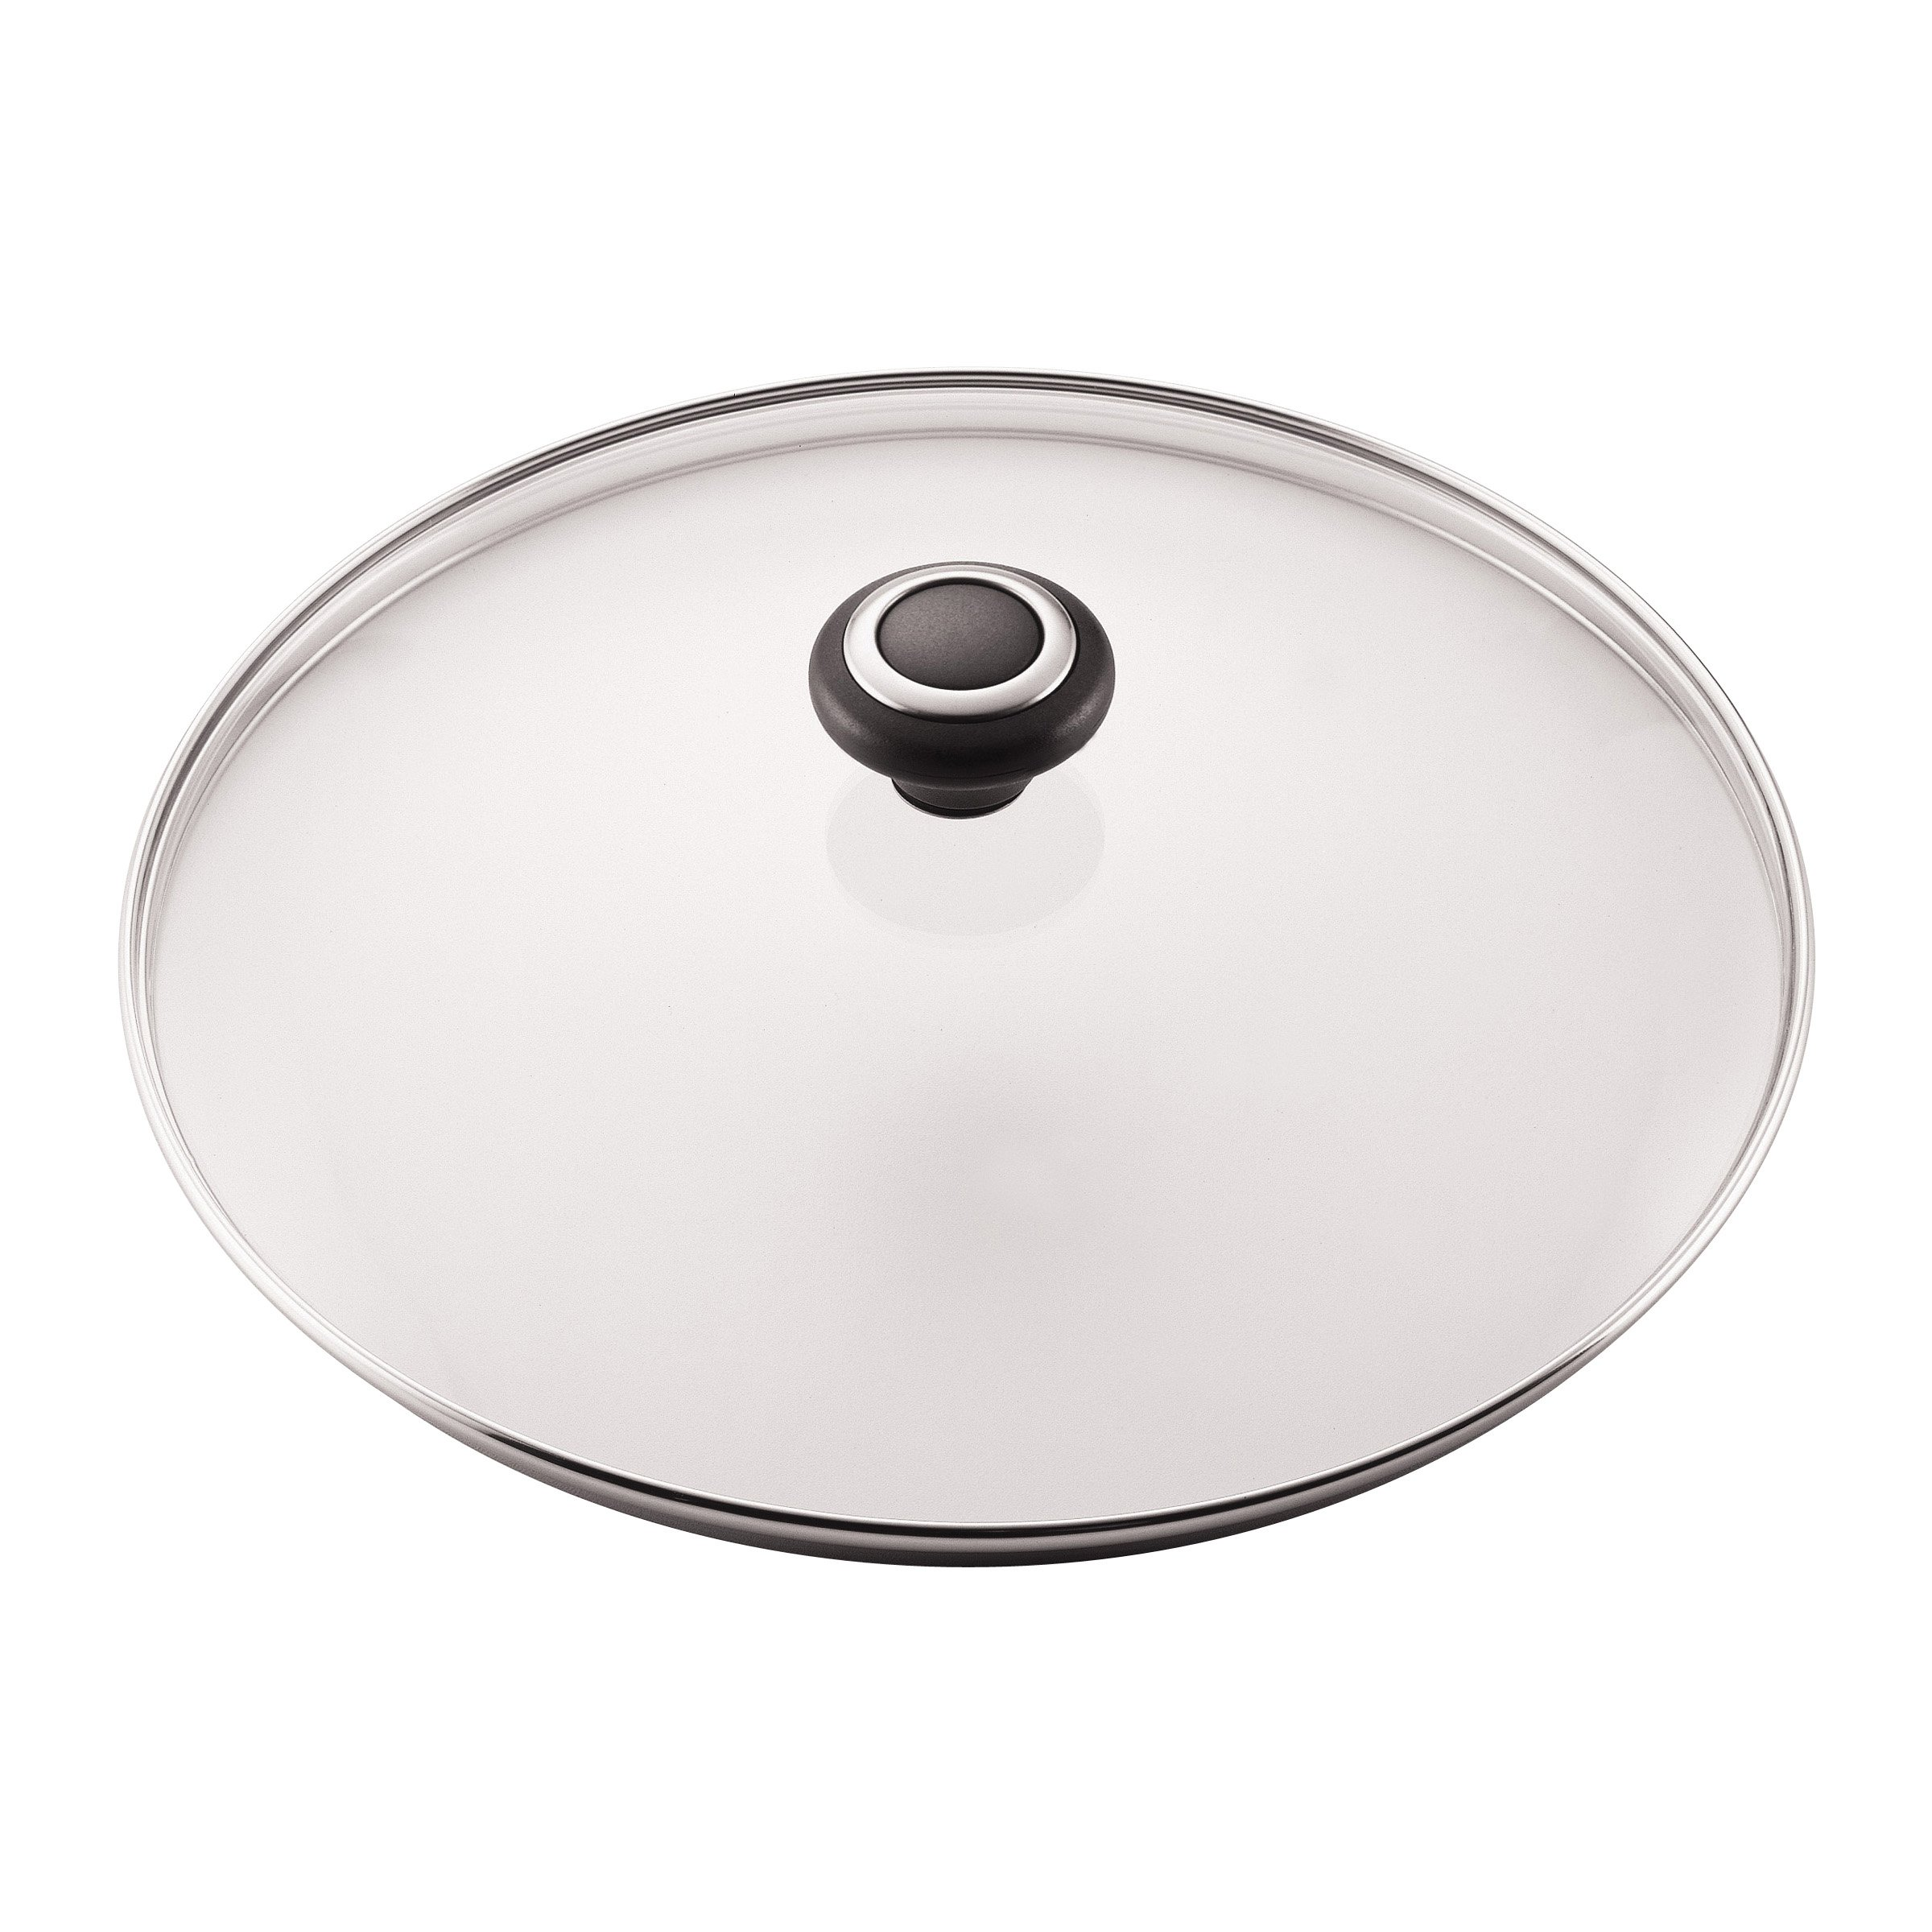 Farberware Glass 12-Inch Replacement Lid by Farberware